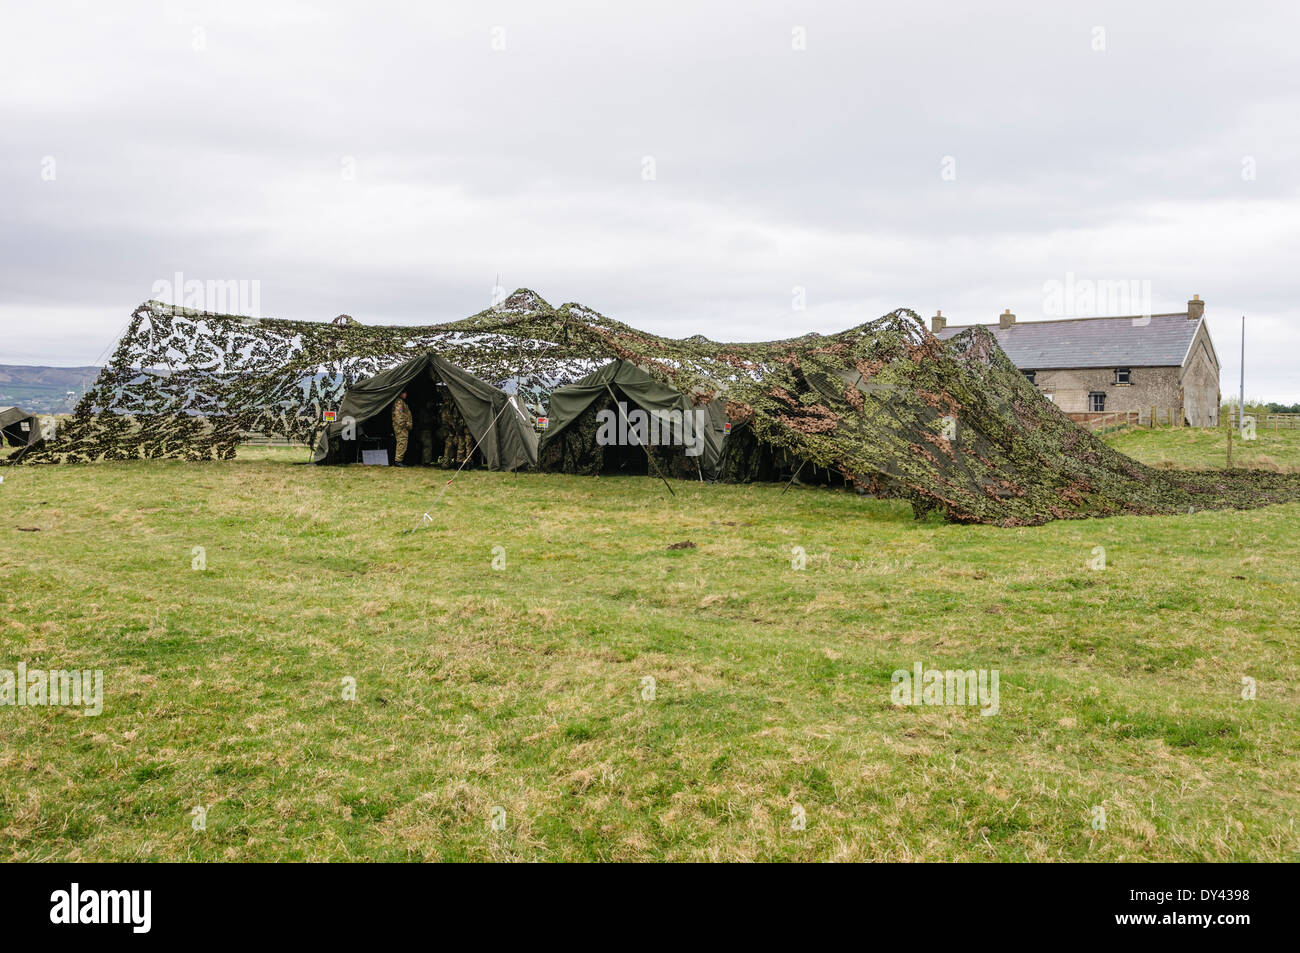 Tents belonging to a mobile command post are covered with camouflage netting in a field - Stock Image